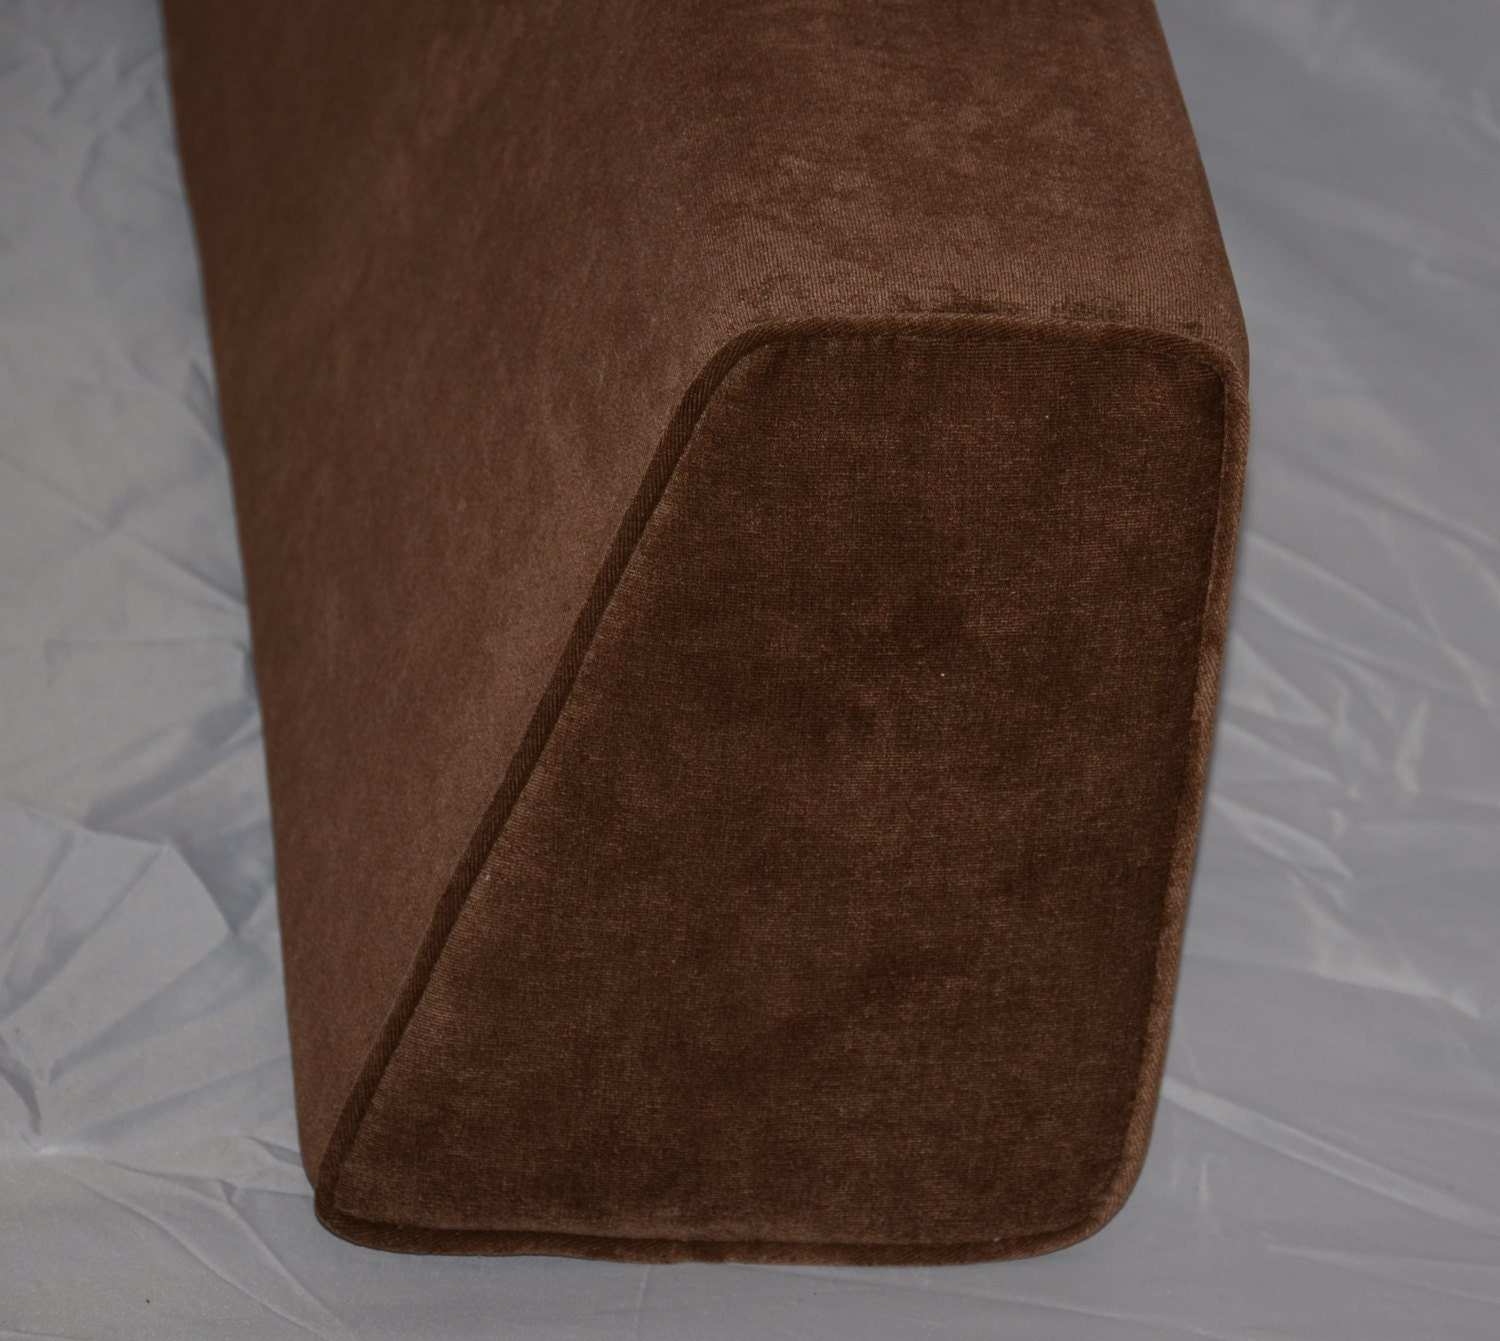 Foam Wedge Pillow Bed Bath And Beyond